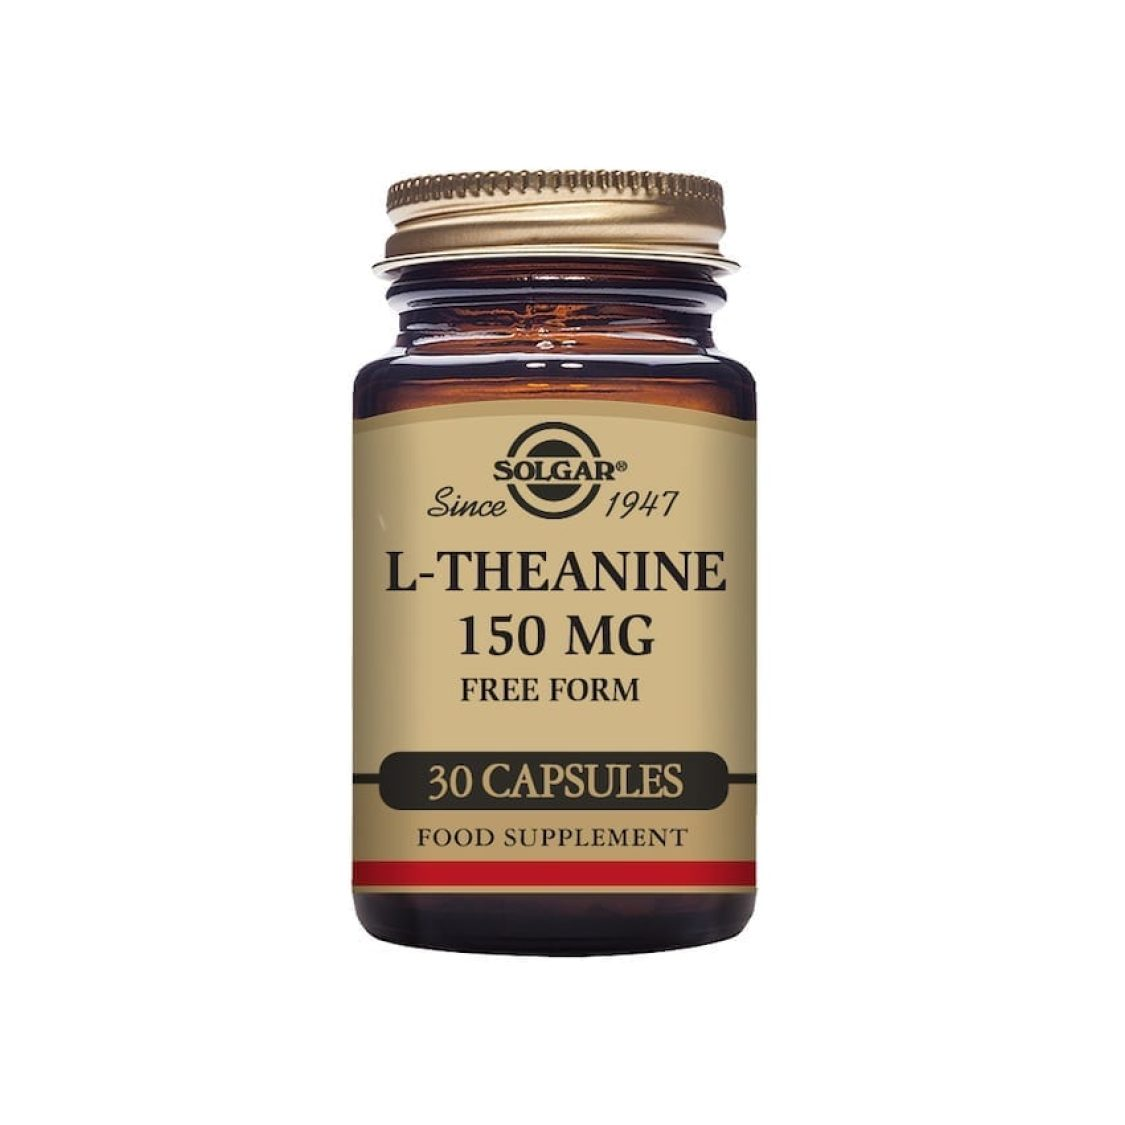 Solgar - Free Form Amino Acids - L-Theanine  - Size: 30